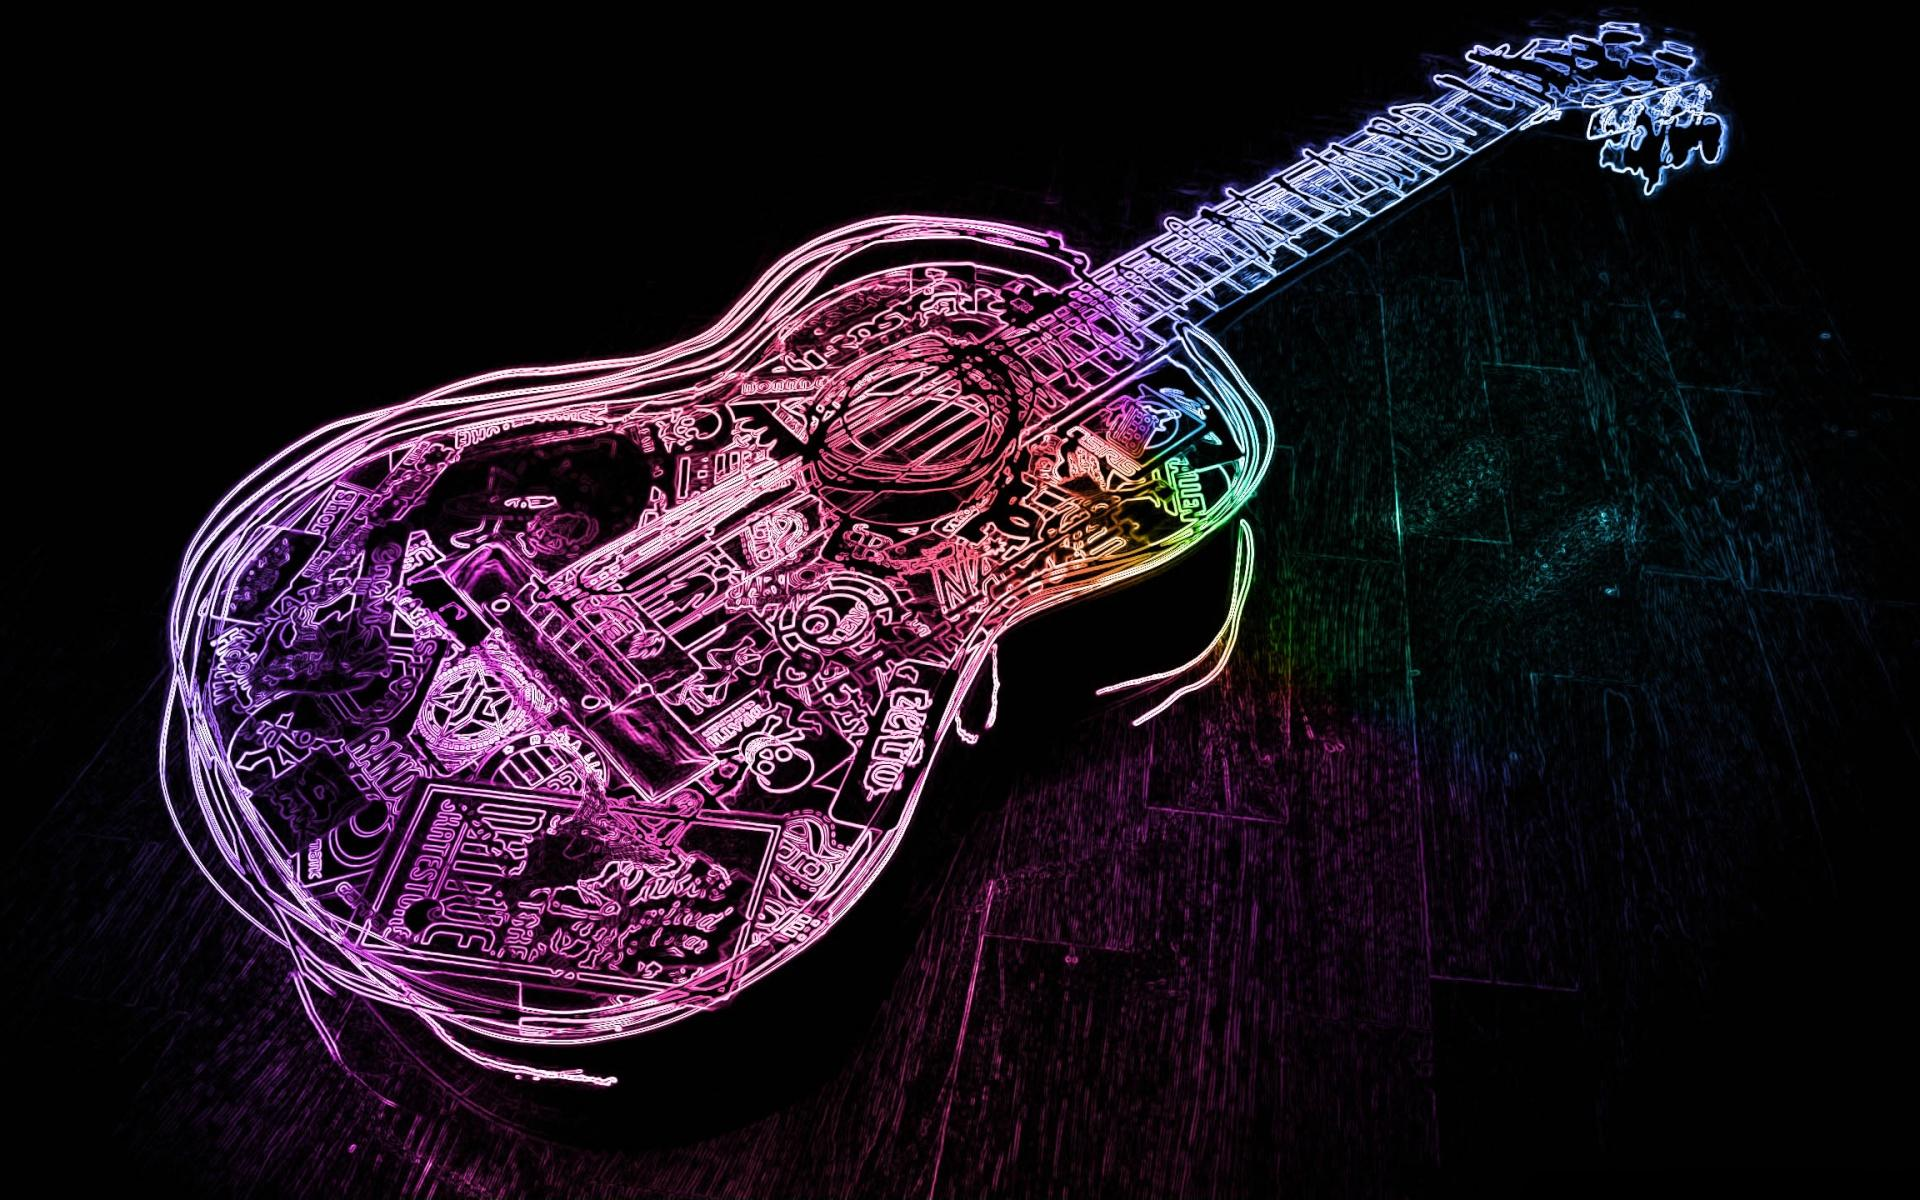 3d Musics Guitar Backgrounds: Guitar Full HD Wallpaper And Background Image